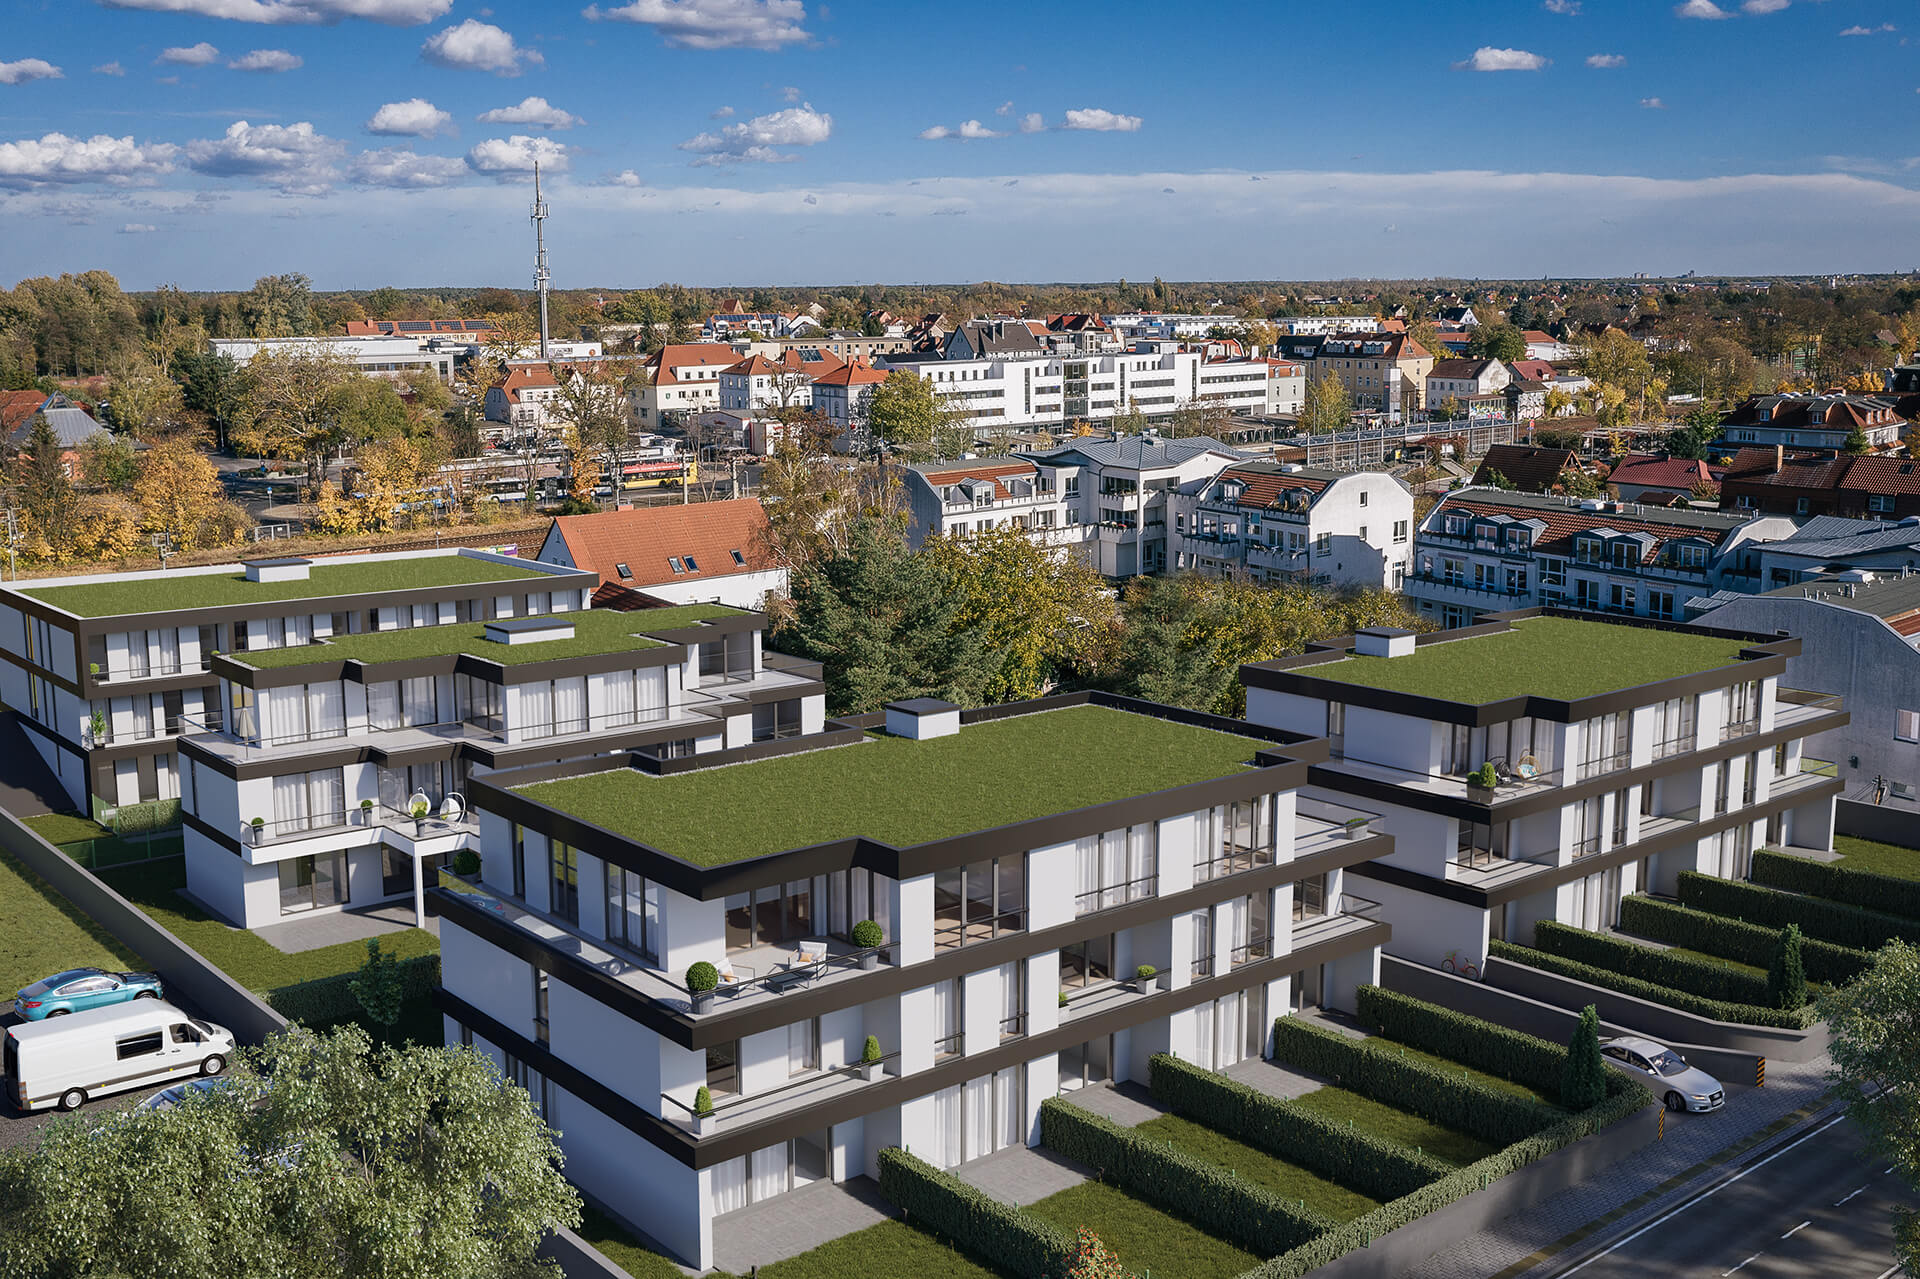 Residential building in Falkensee, Germany